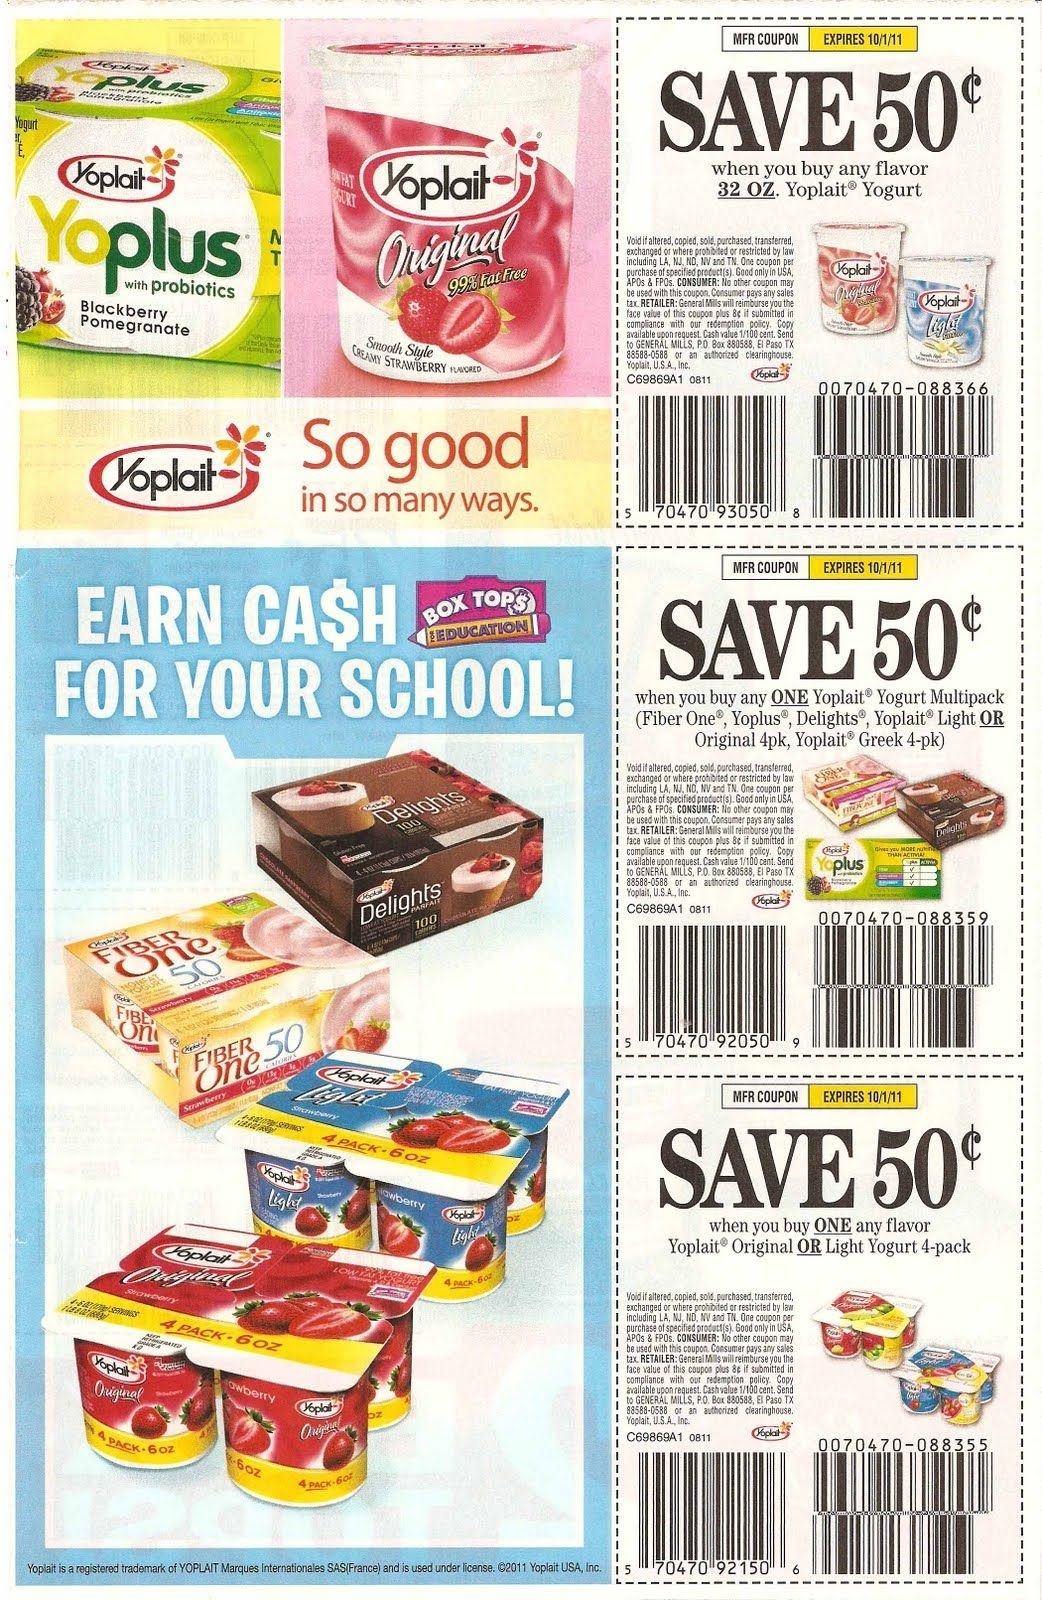 Free Printable Grocery Coupons For Groceries, Food, Family And - Free Printable Grocery Coupons